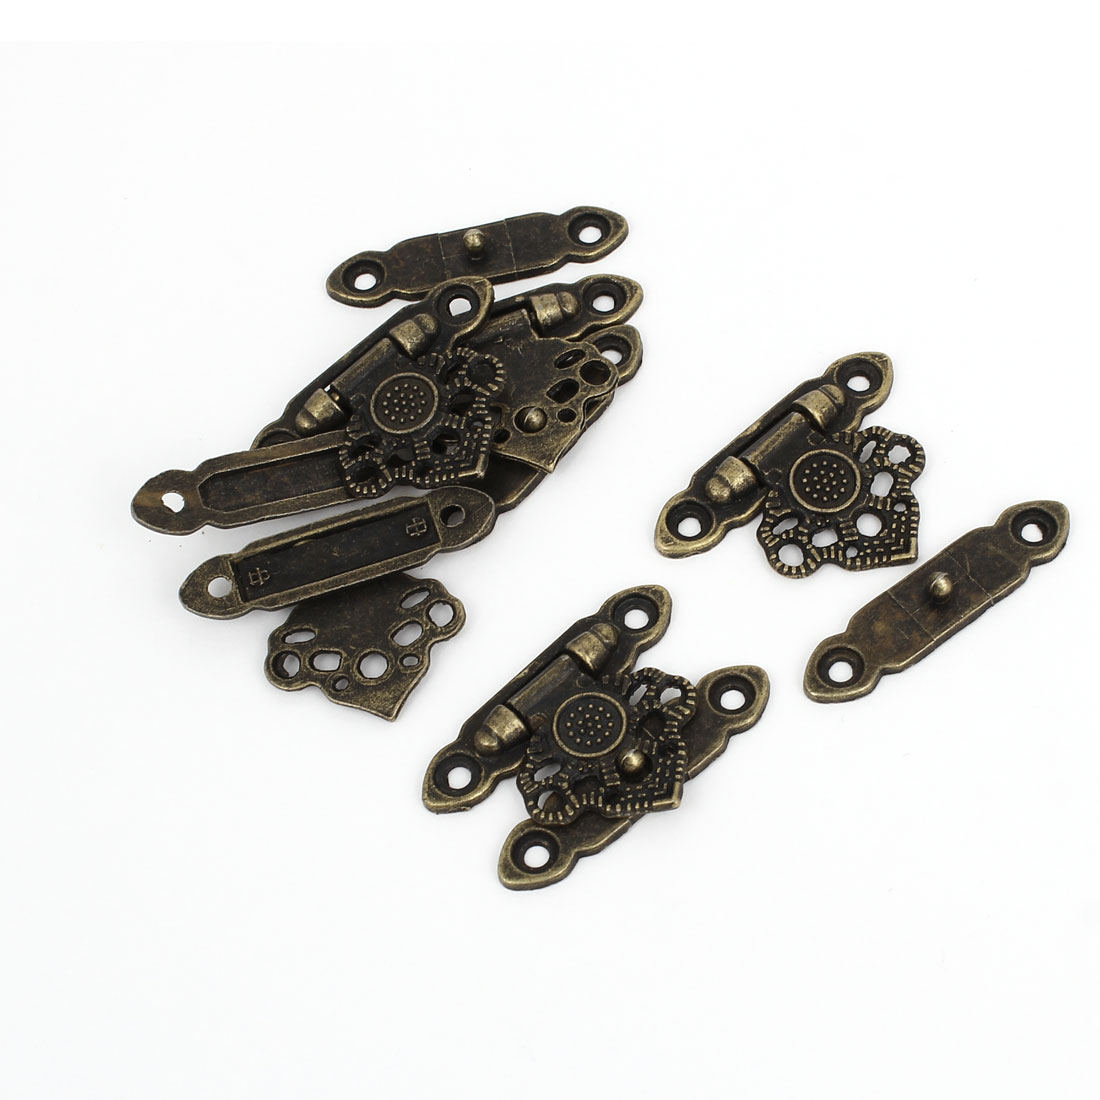 5 Pcs Antique Wood Box Latch Sets Case Locking Hinge Bronze Tone 3.5cm Long